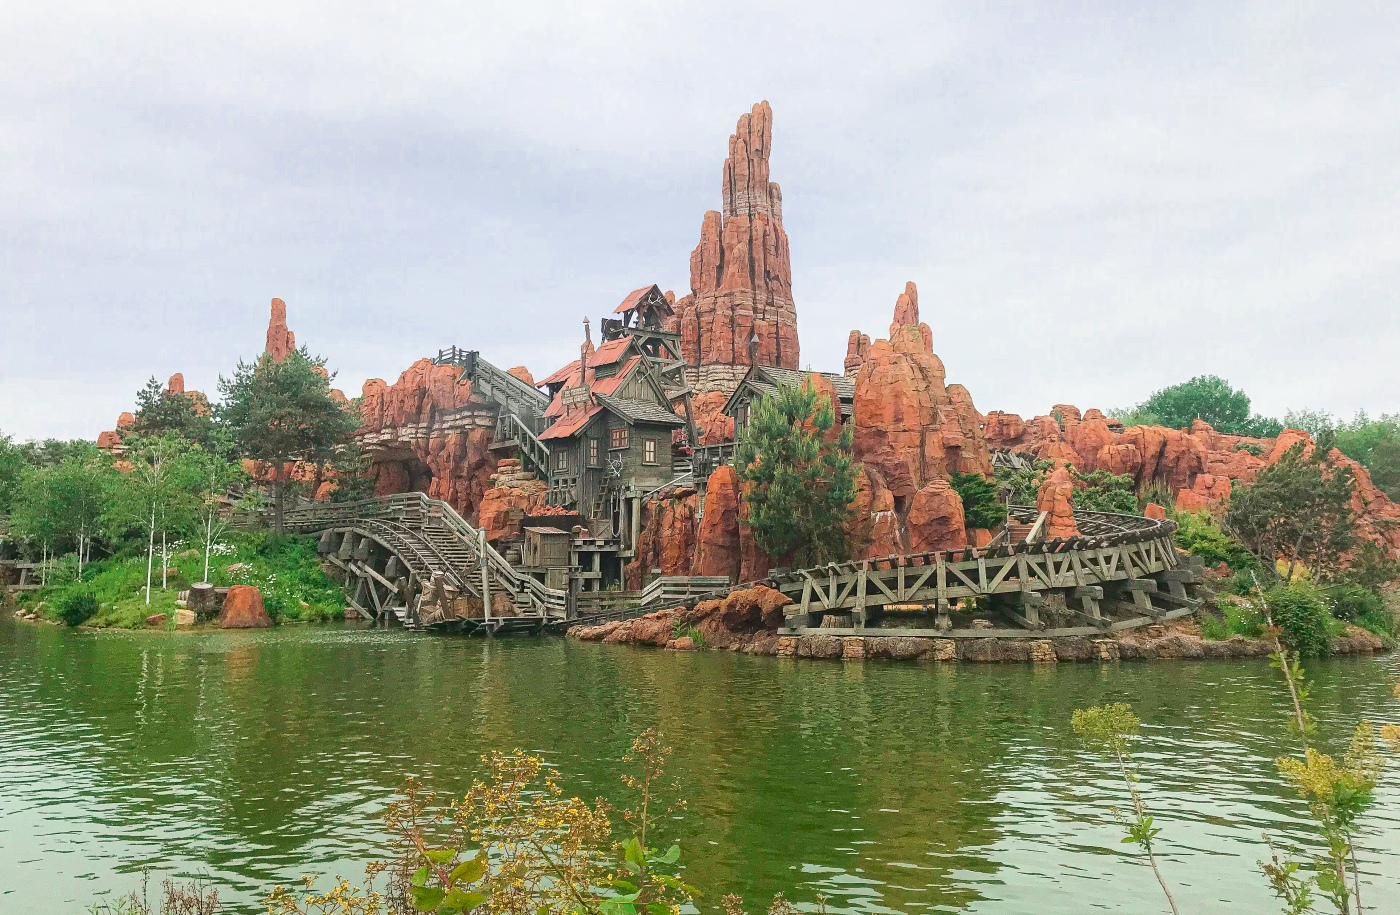 A view of Big Thunder Mountain from Frontierland in Disneyland Paris